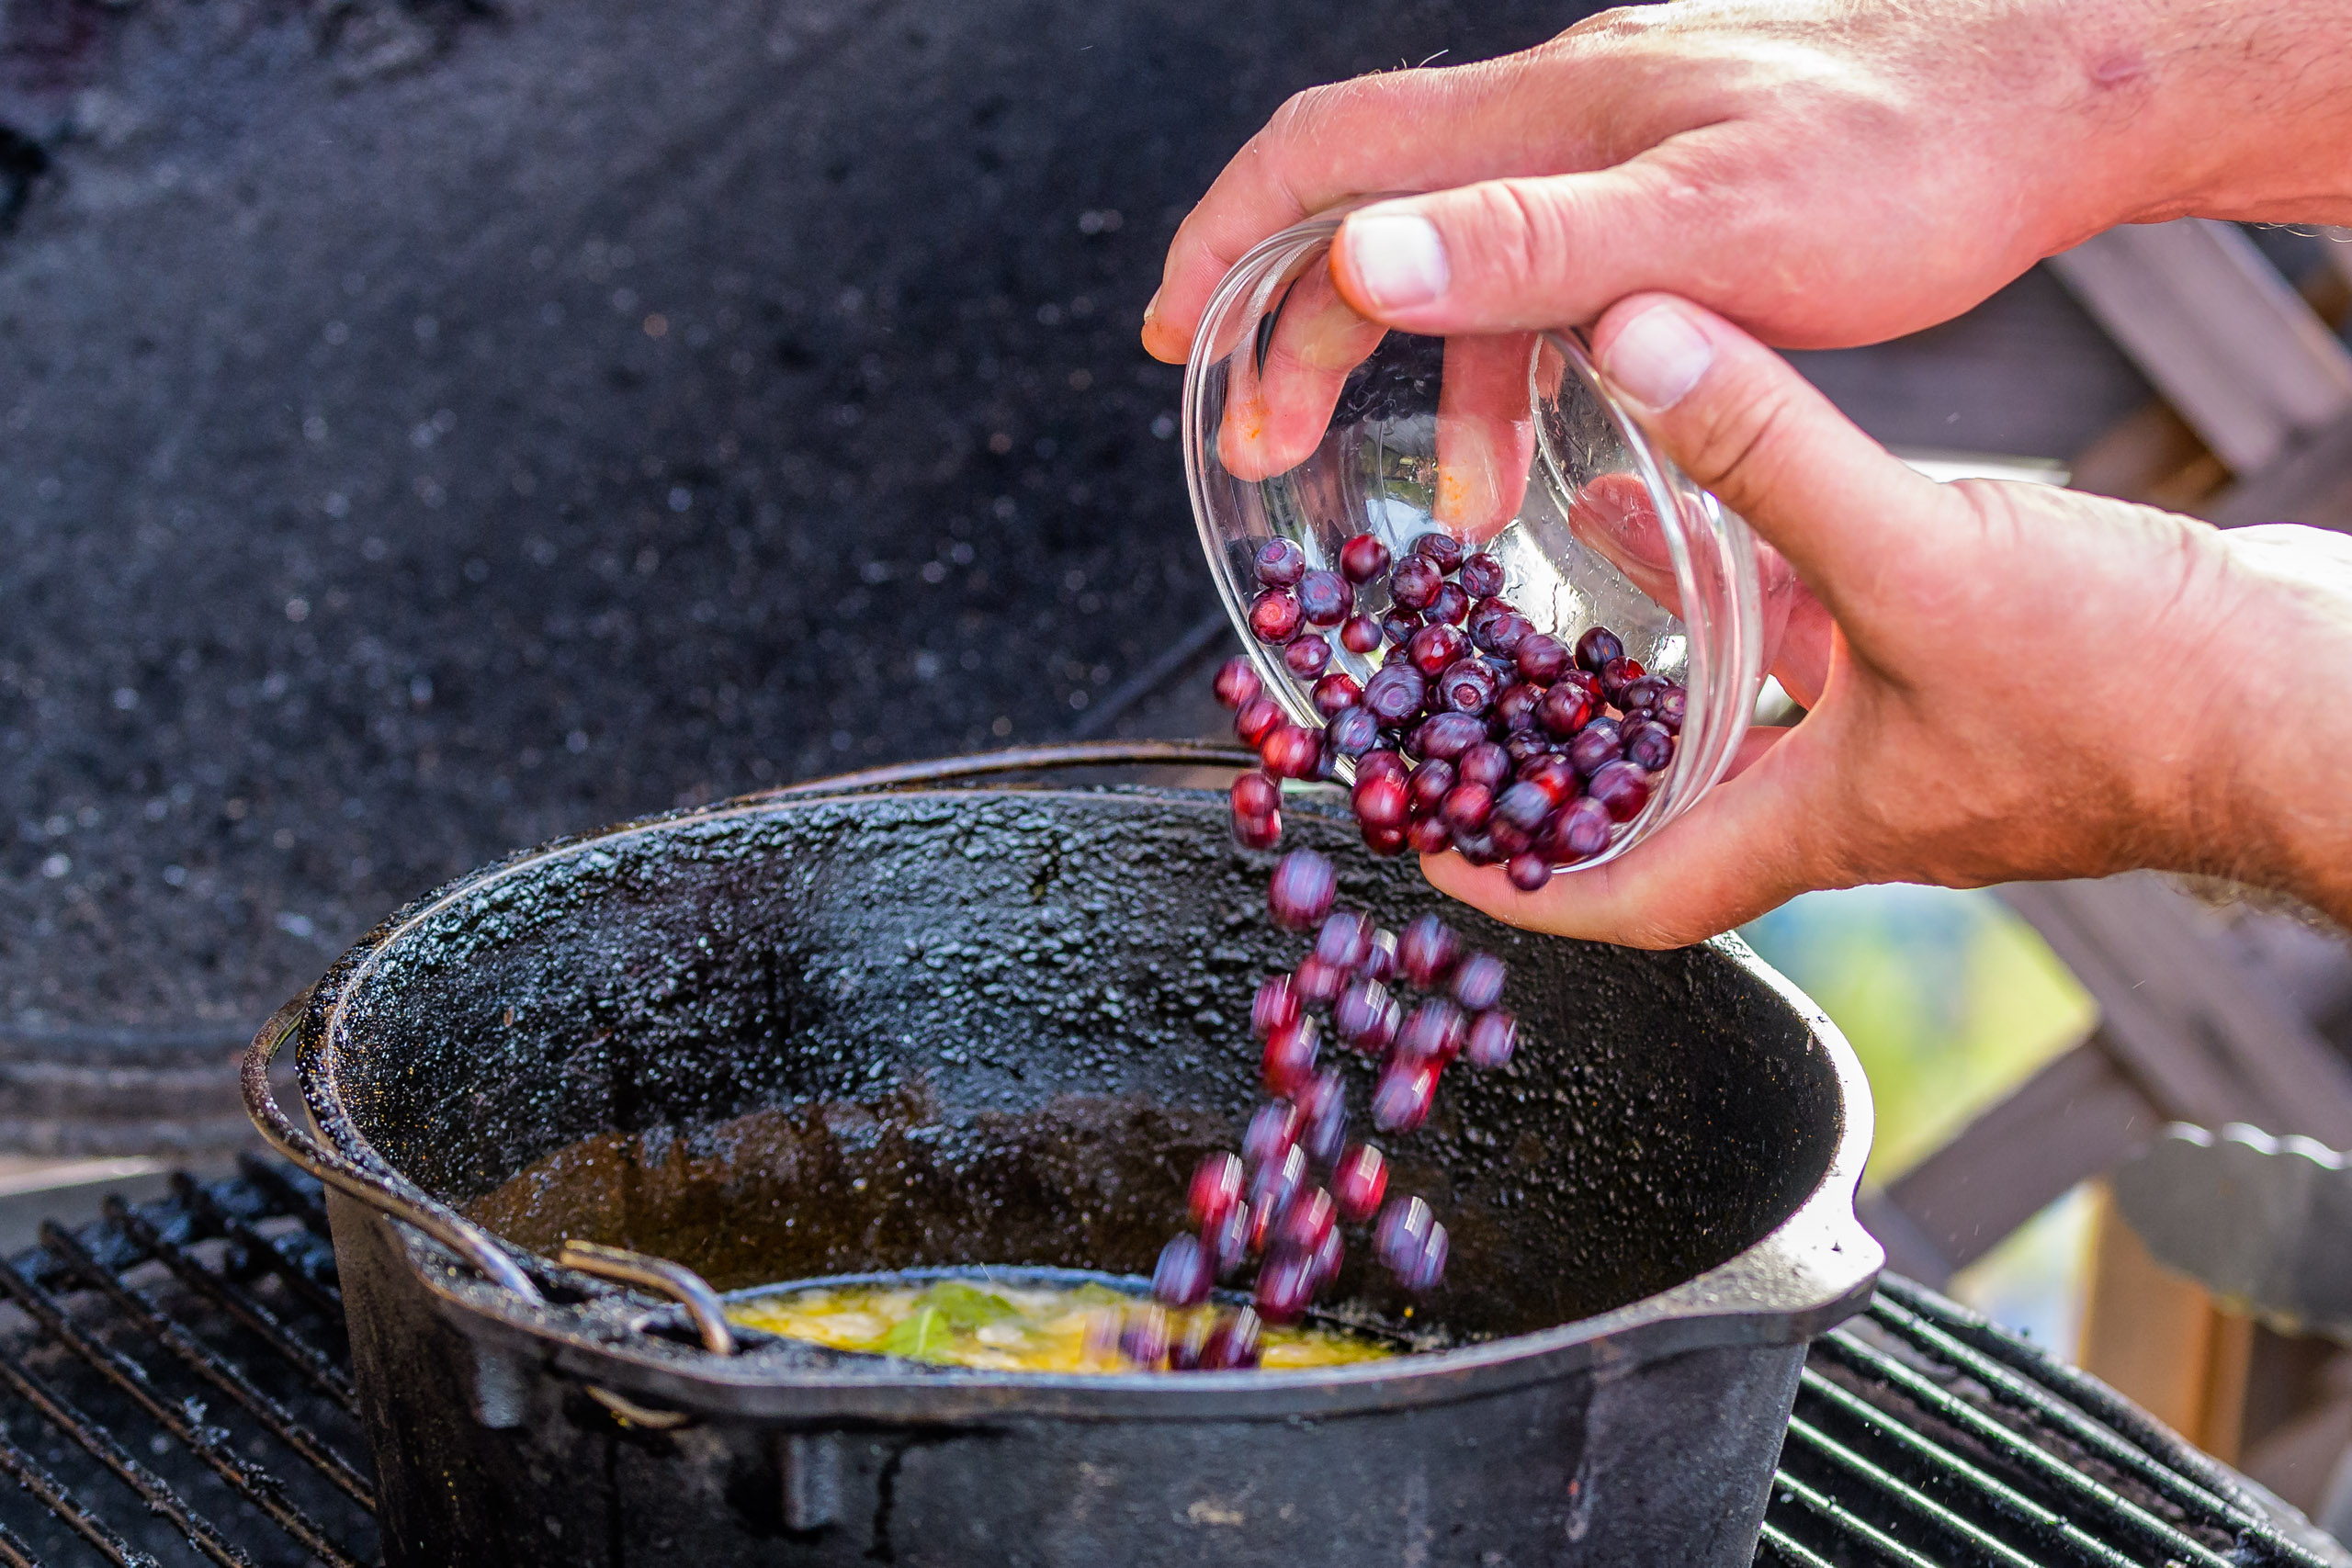 Huckleberries into the butter sauce